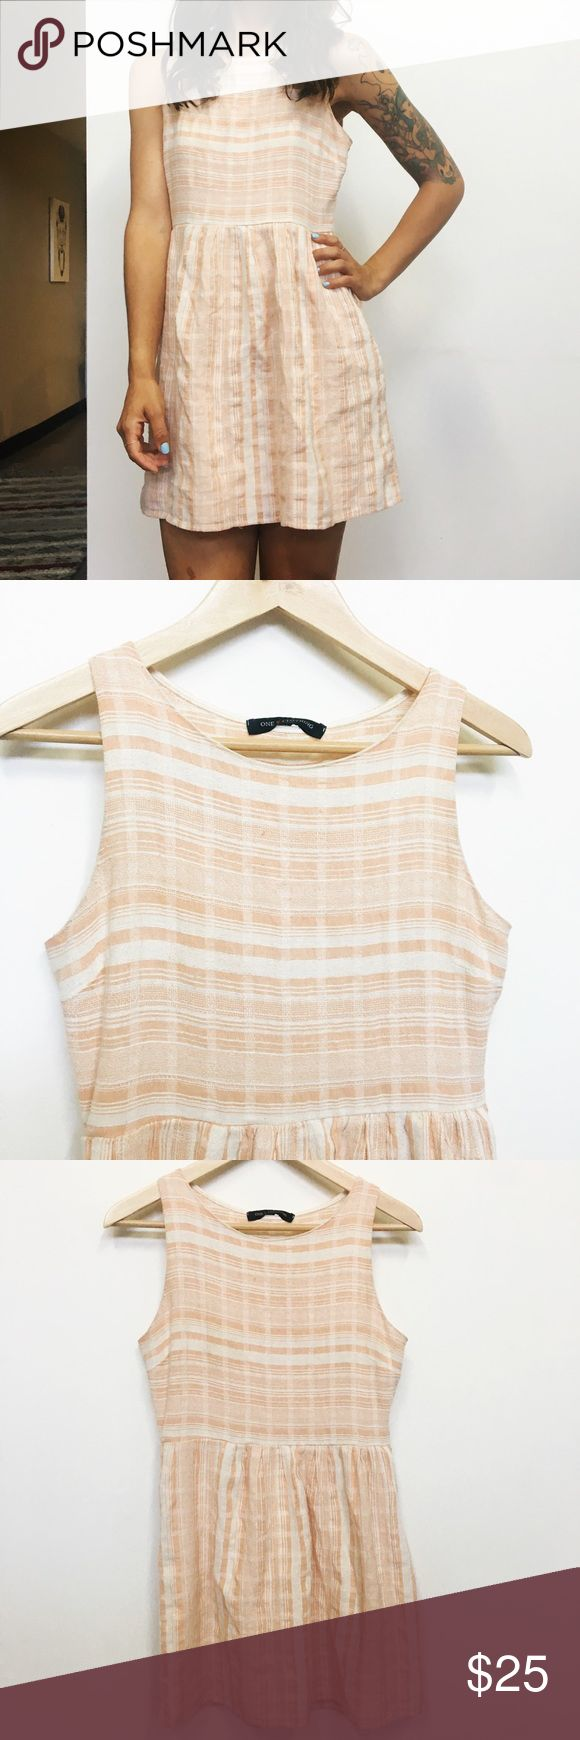 Tan and cream striped dress! This tan and cream striped dress is perfect for a picnic date! It's super comfy and look great with either sandals or flats. Second to the last photo shows one pulled thread, not very noticeable while wearing. one clothing Dresses